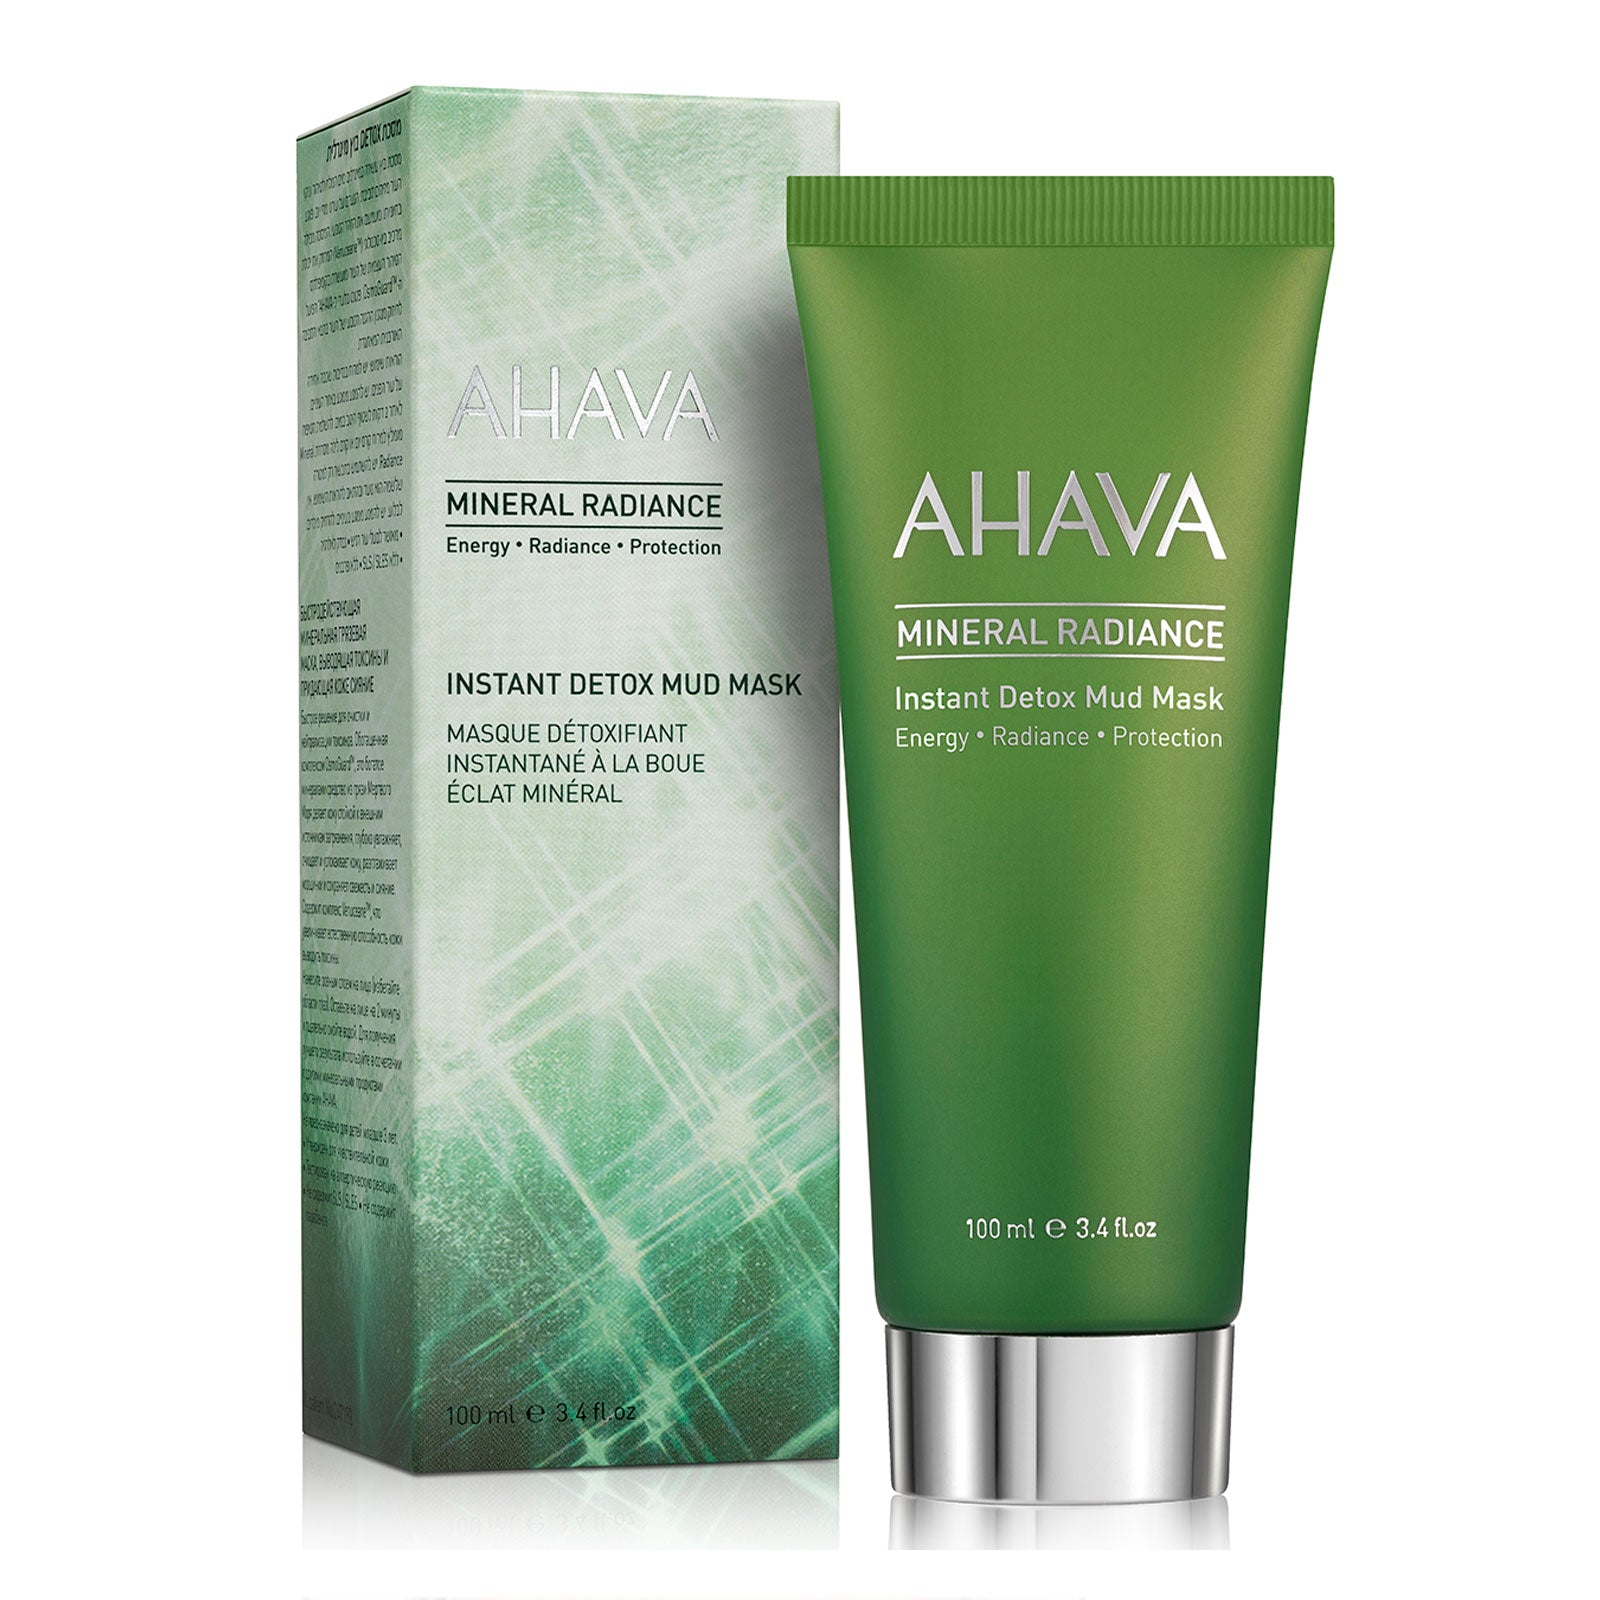 AHAVA Mineral Radiance Detox Mud Mask 100ml